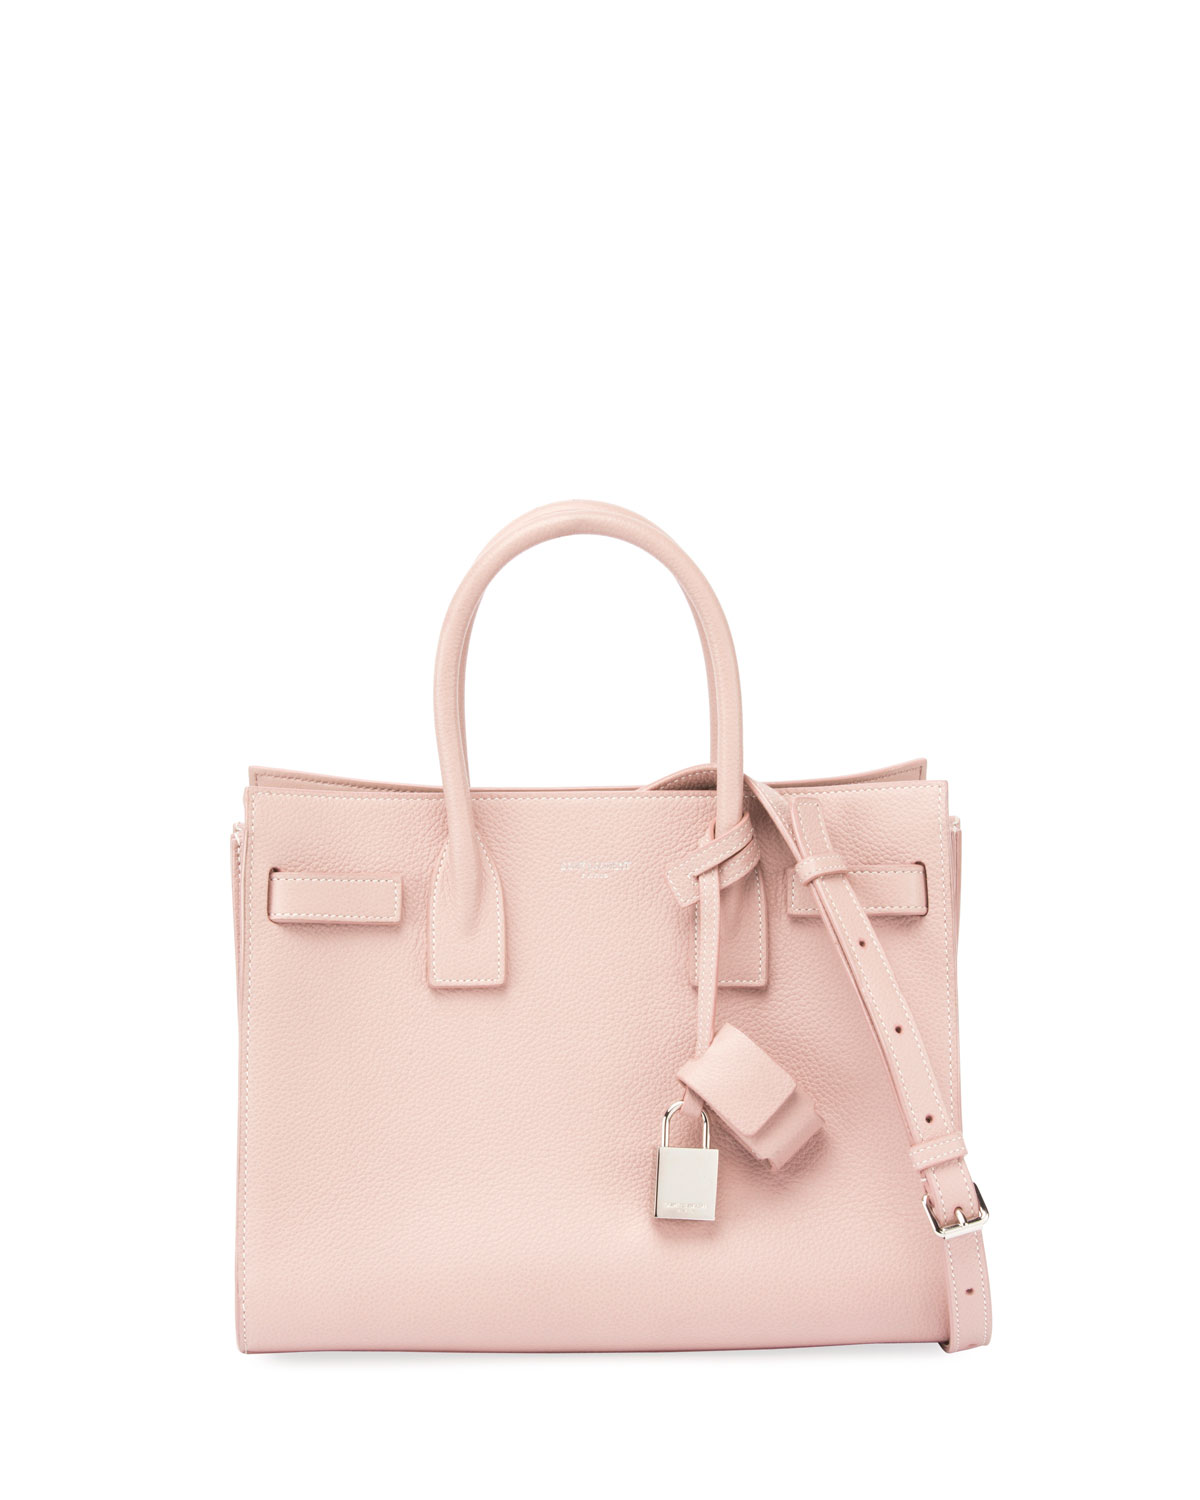 6424f88293060 Saint Laurent Sac de Jour Baby Grain Leather Tote Bag, Blush ...